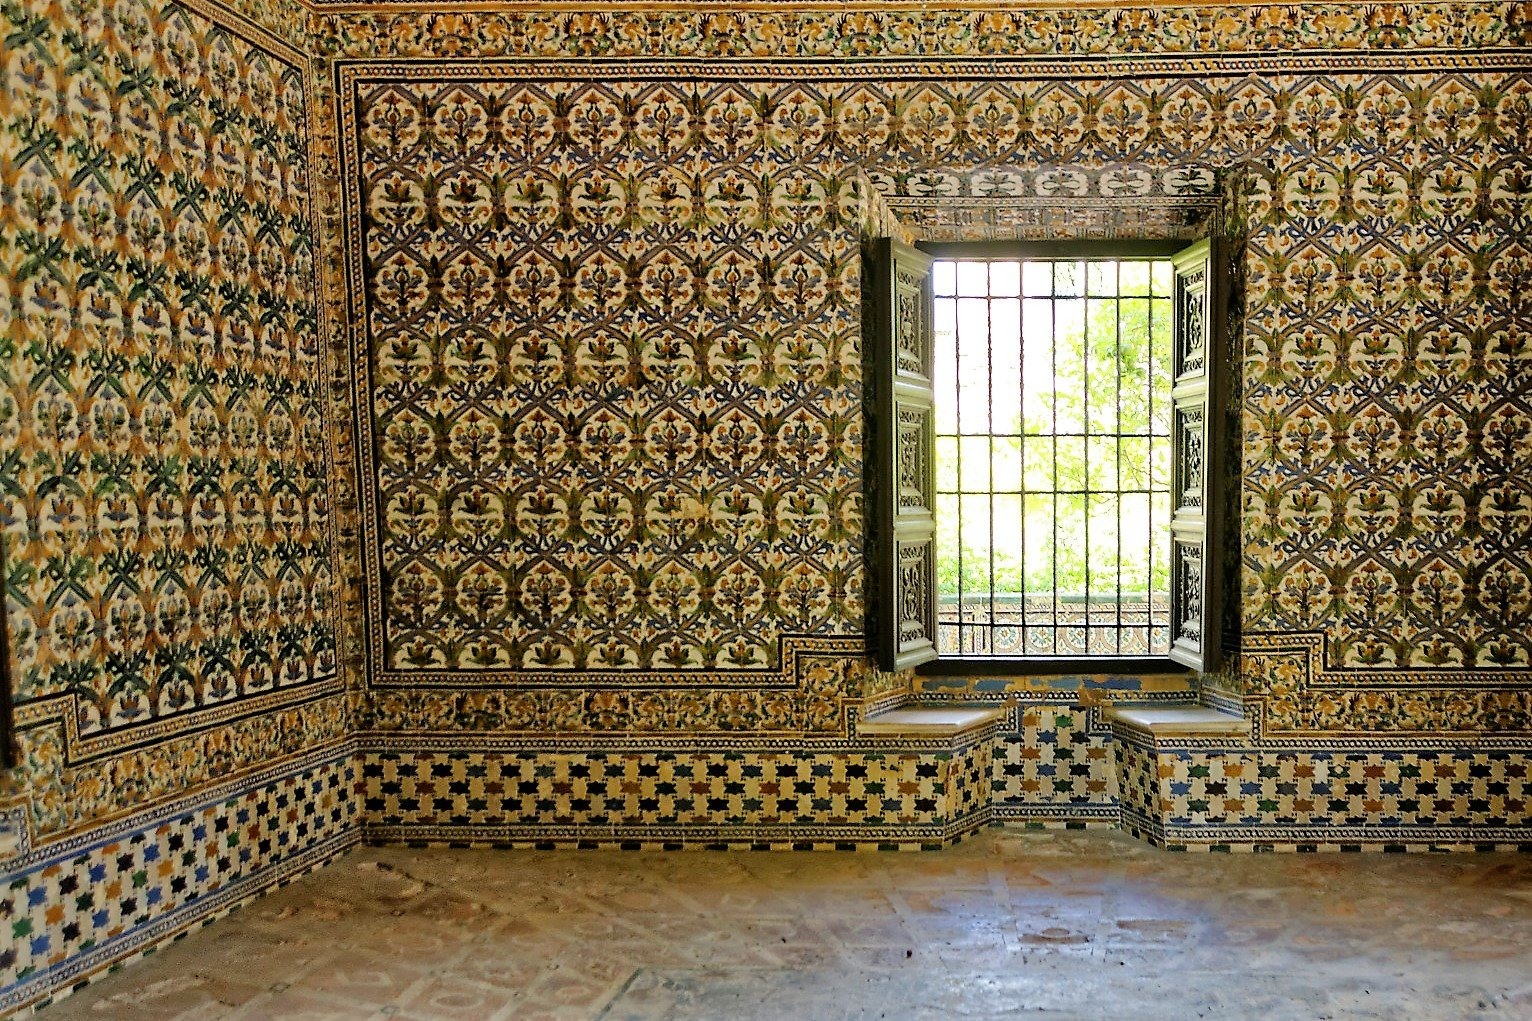 How to visit the appartments of Charles V in Seville